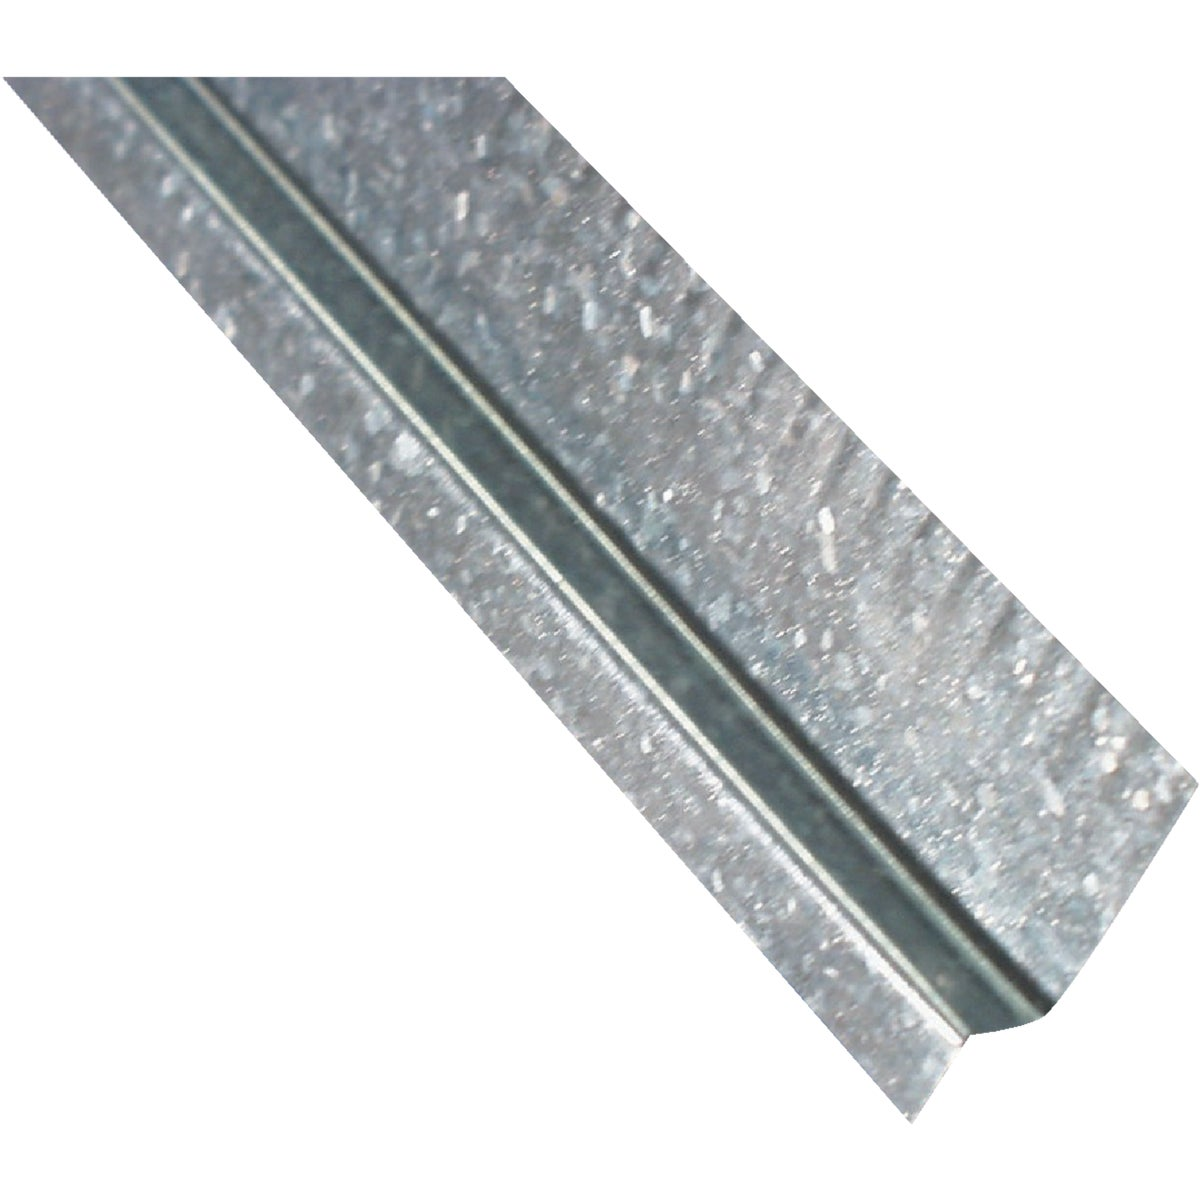 "5/8"" Z-BAR METAL ANGLE - 5651500120 by Amerimax Home Prod"